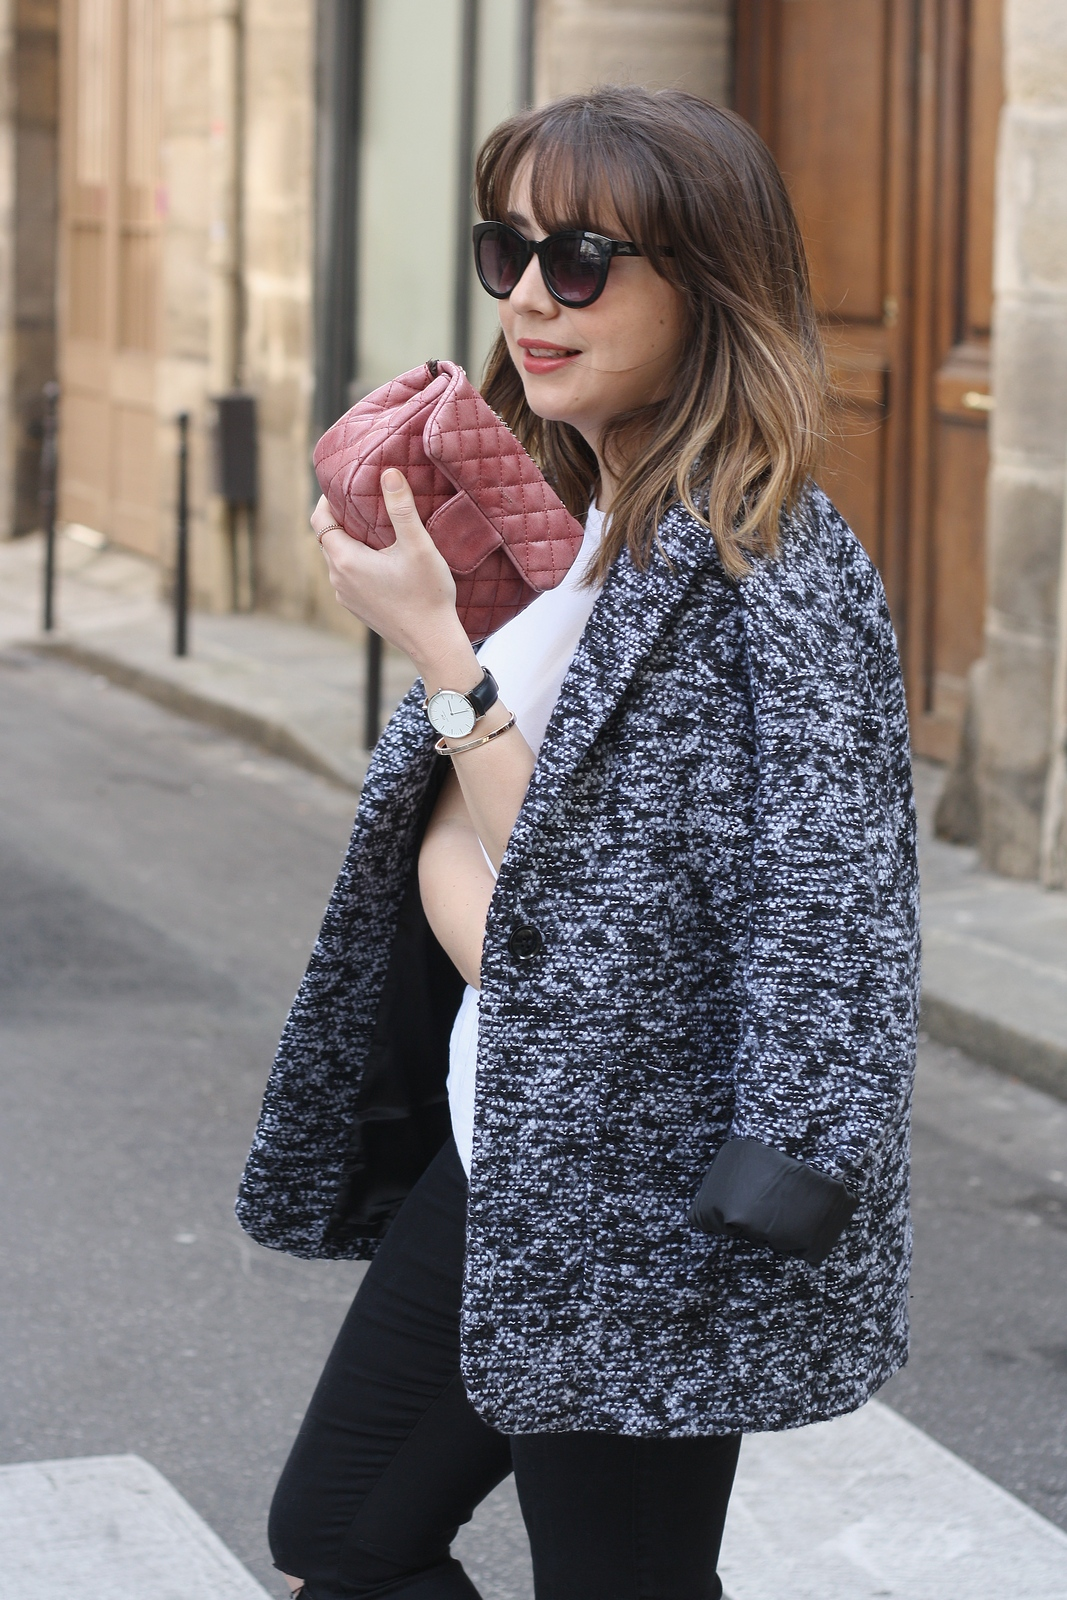 Blog mode femme Paris - Du style, Madame - Streetstyle - look